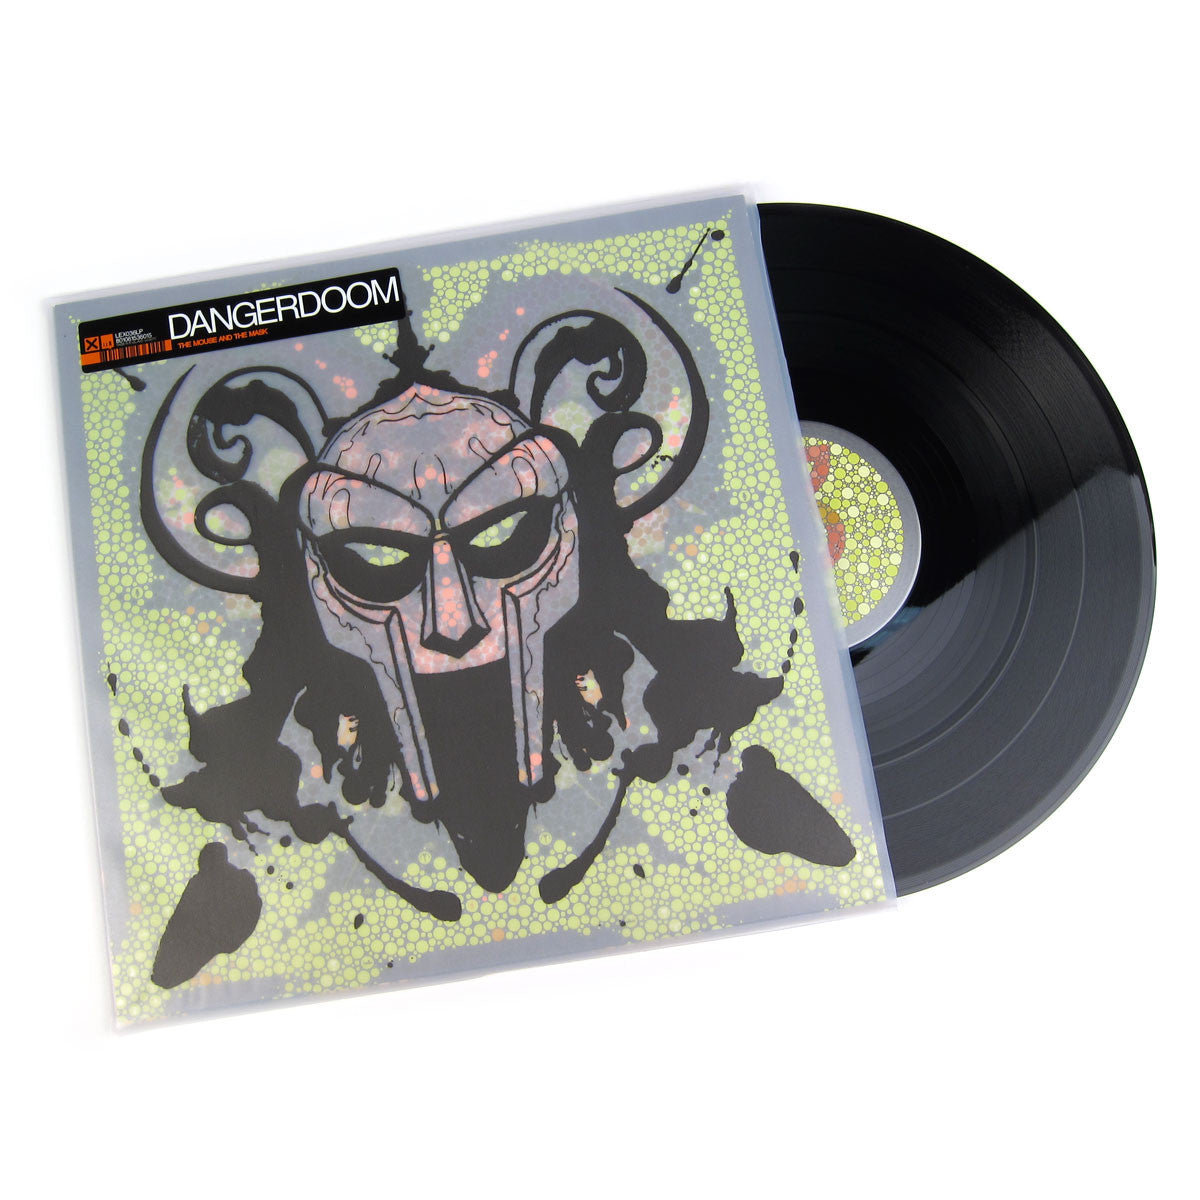 Dangerdoom: Mouse & The Mask (MF Doom, Dangermouse) Vinyl 2LPDangerdoom: Mouse & The Mask (MF Doom, Dangermouse) Vinyl 2LP